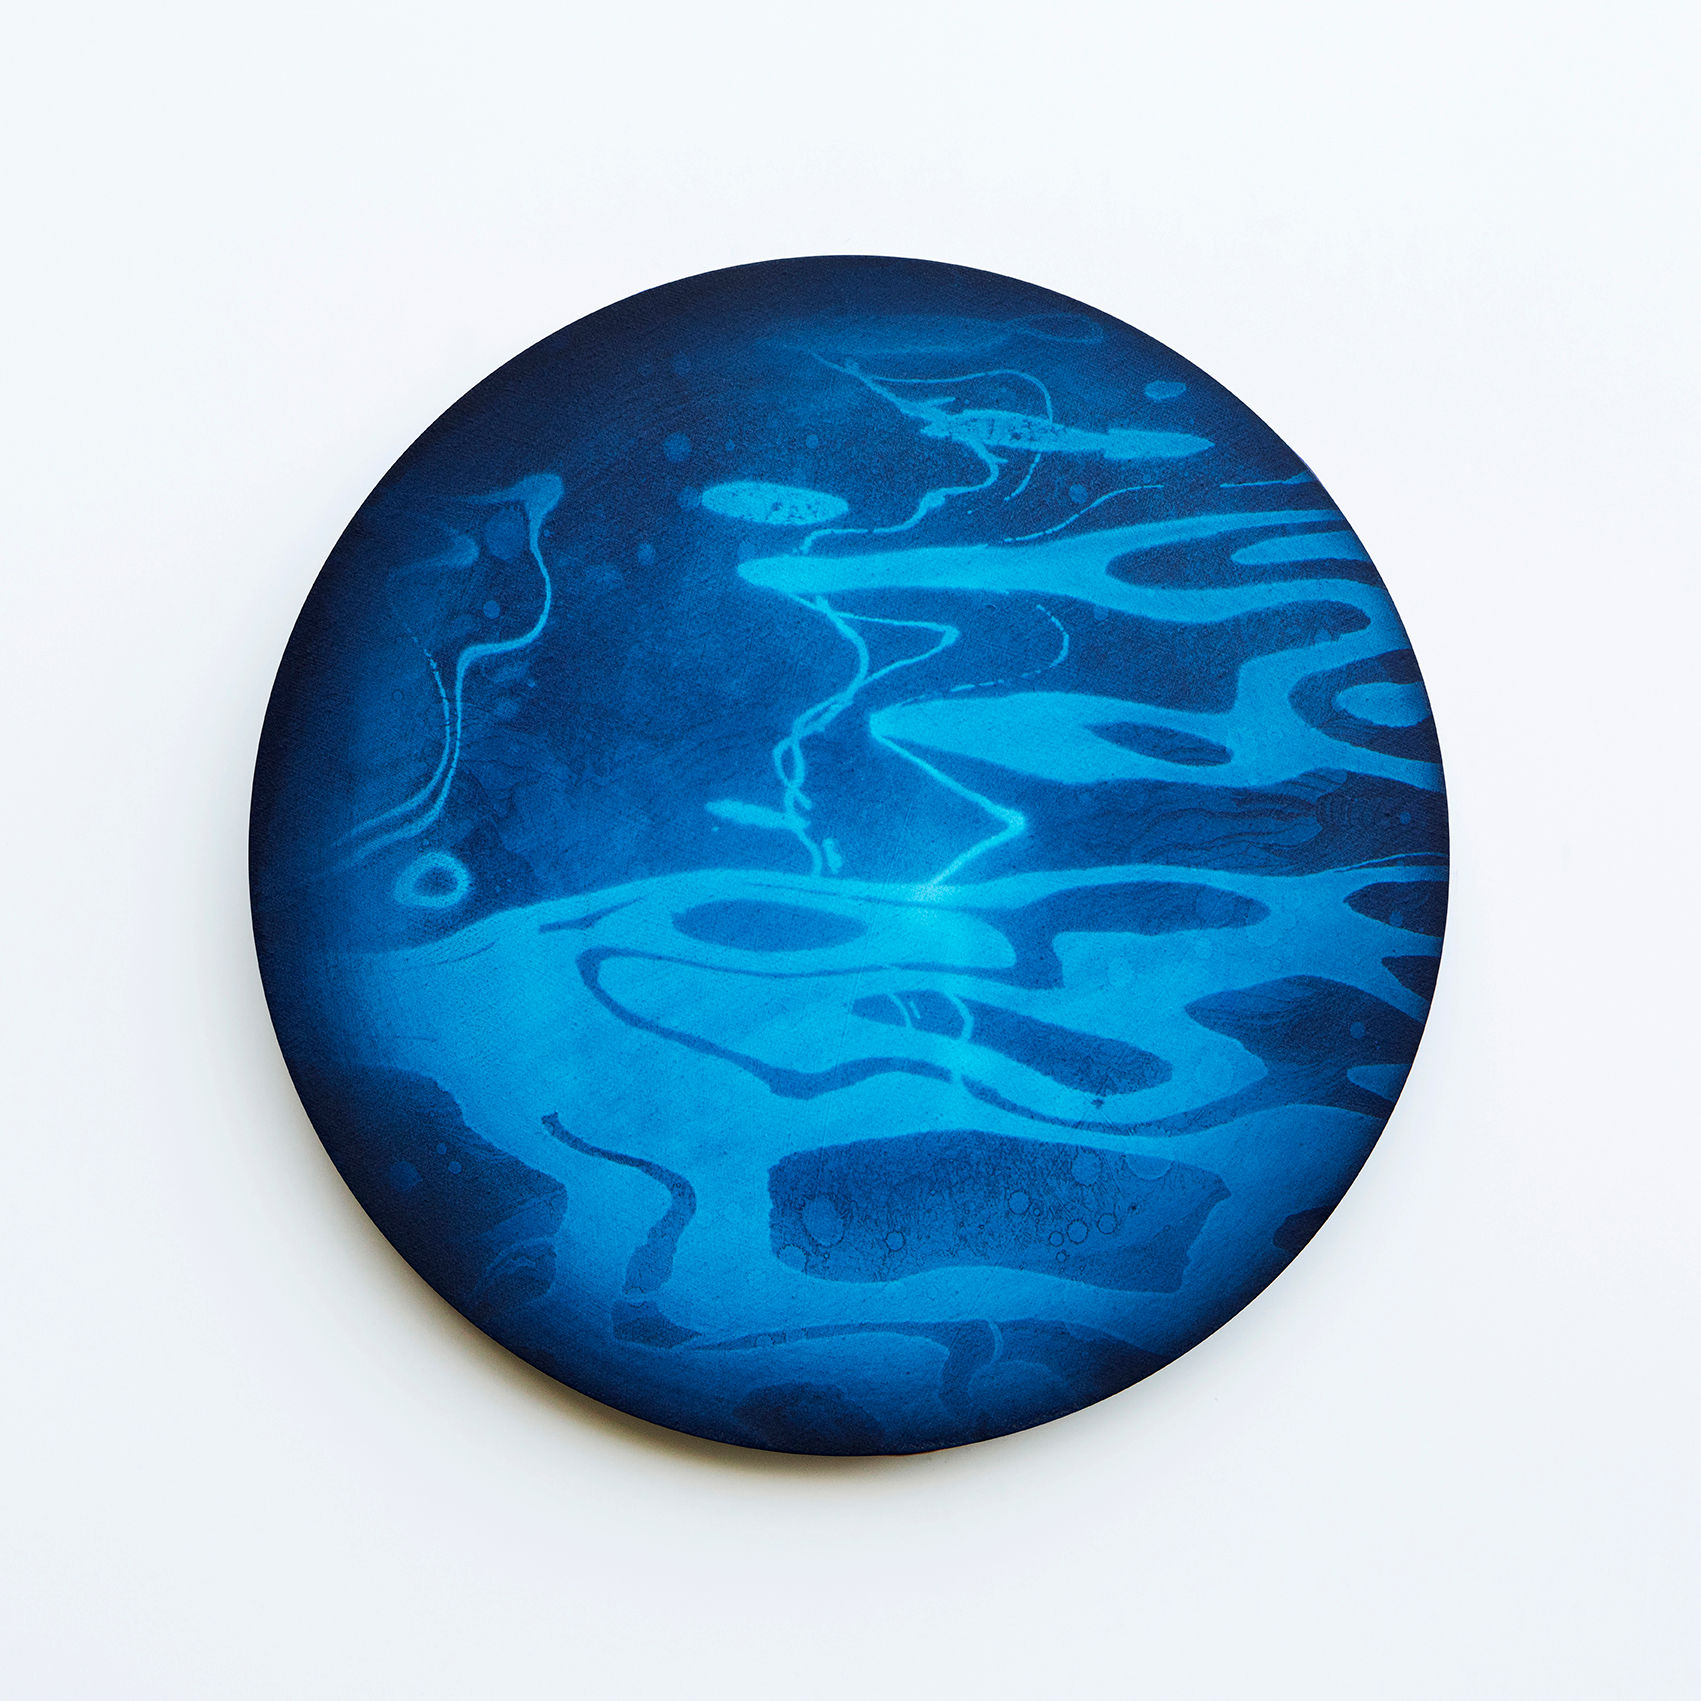 WATERSCAPE_내 안의 바깥 36, Diameter 40cm, Traditional pigment, water-print, water-drawing on canvas, 2018